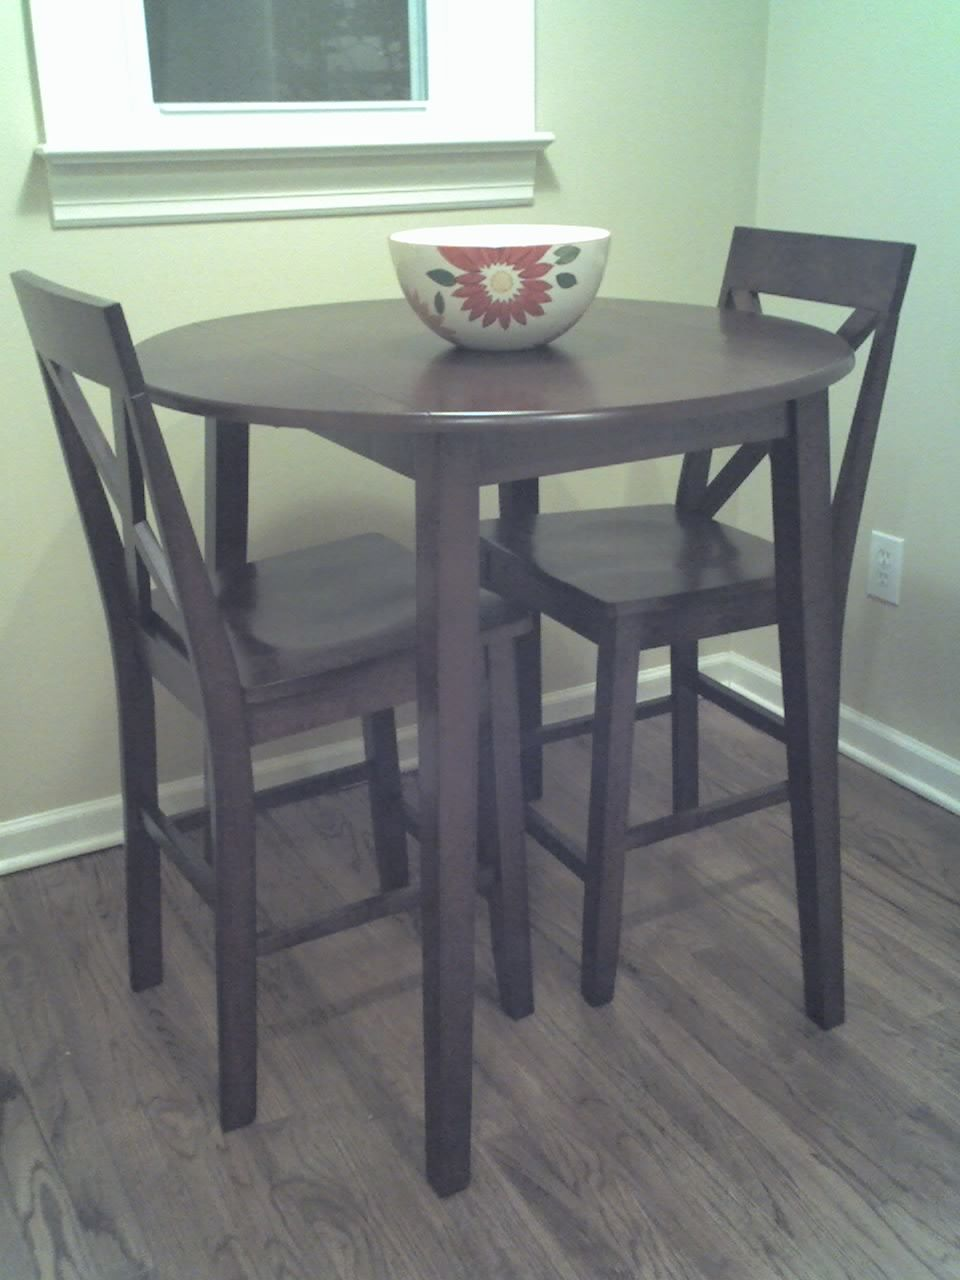 Tall Kitchen Table With 2 Chairs Tall Kitchen Table Small